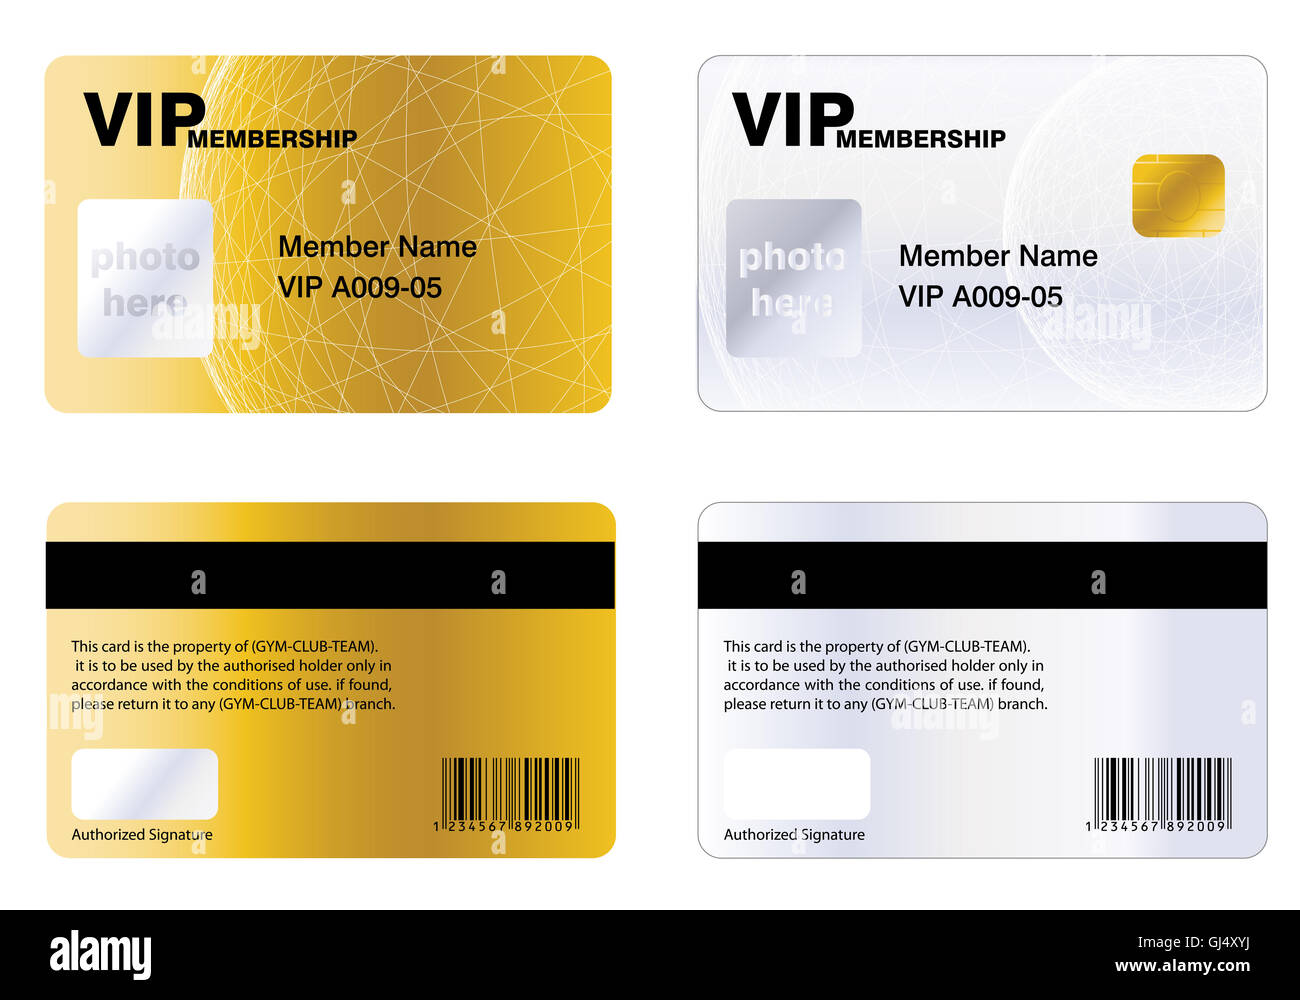 Great VIP MEMBERSHIP CARD